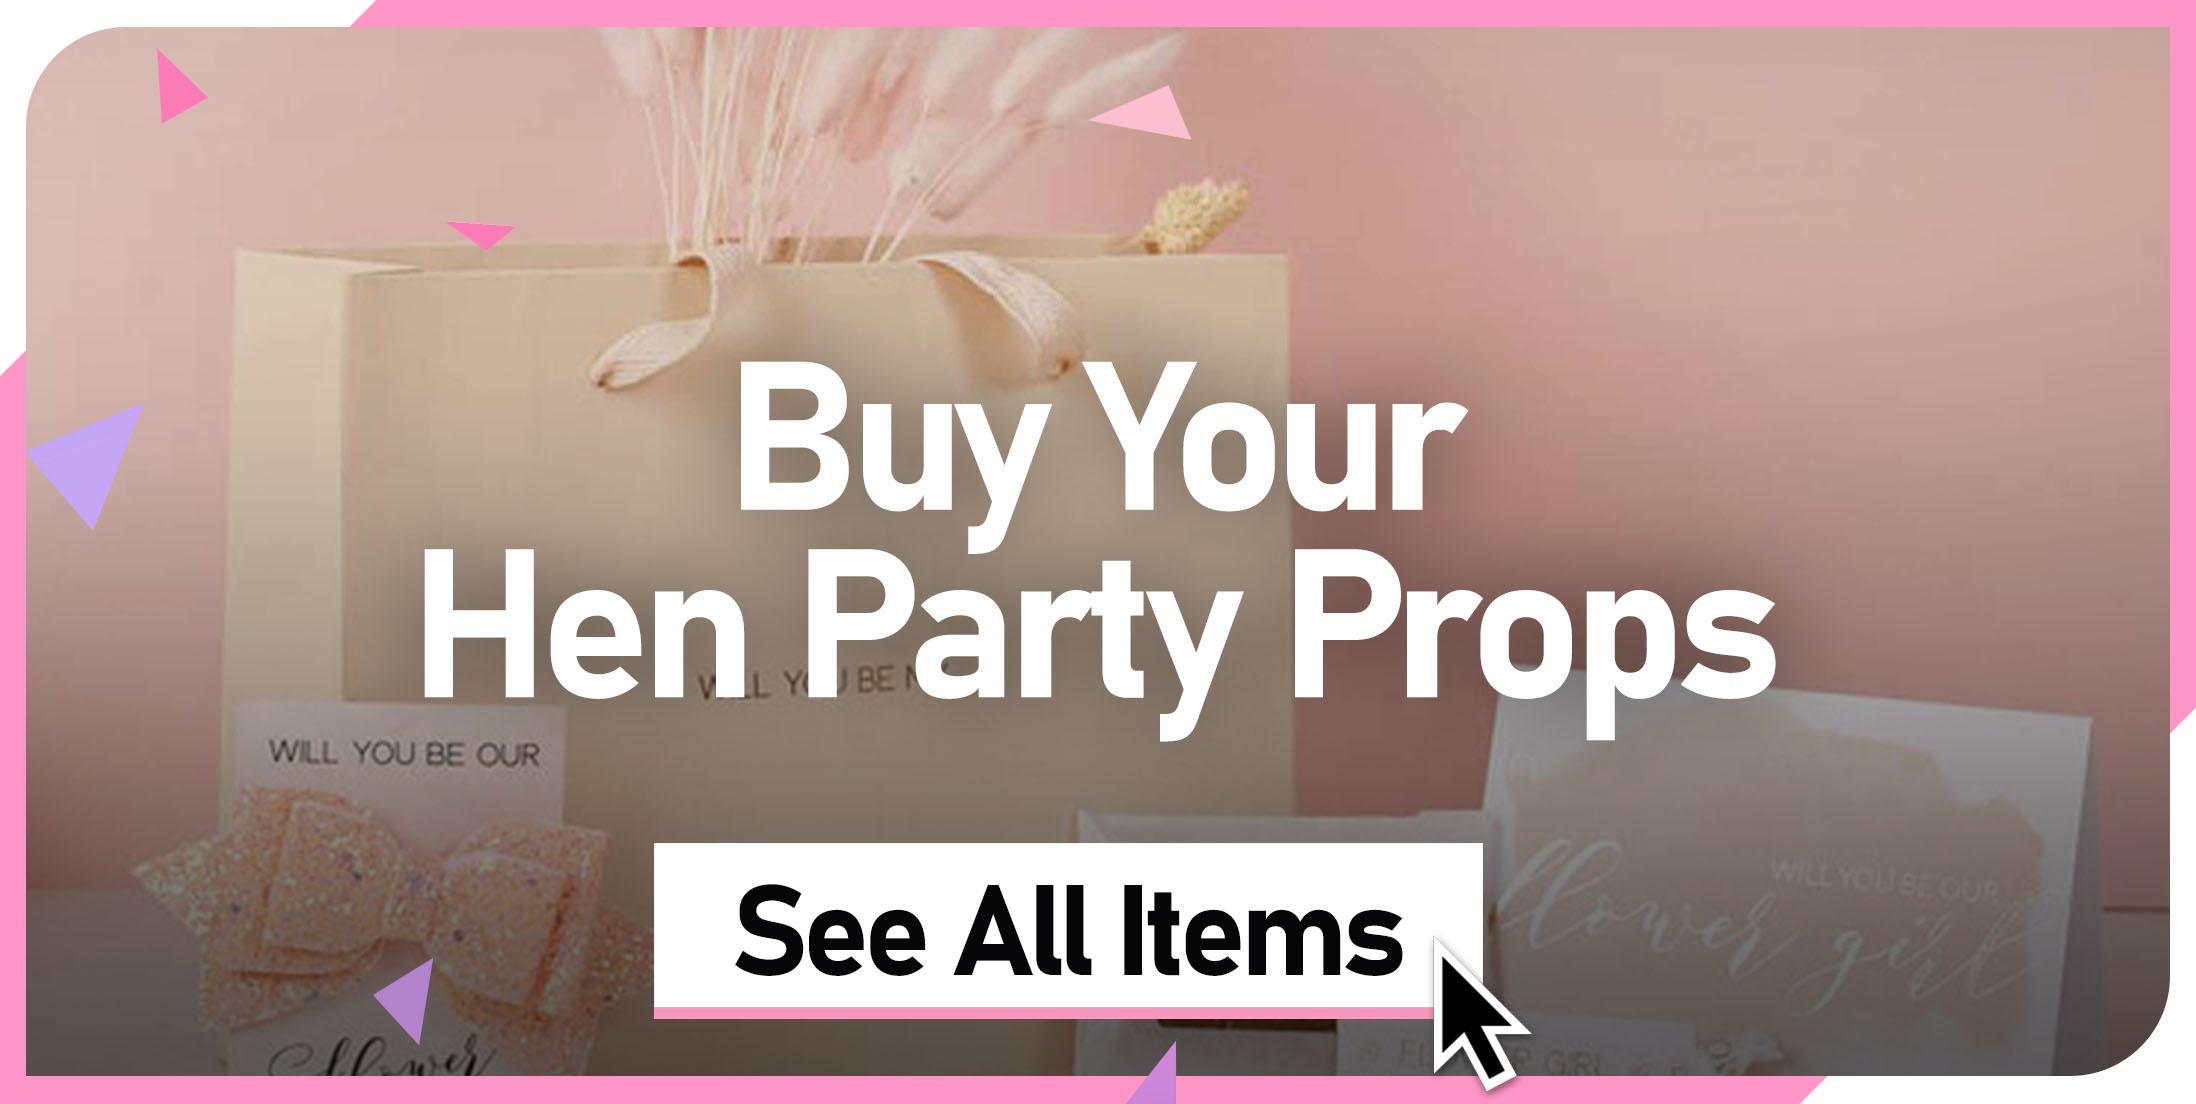 Buy Your Hen Party Props